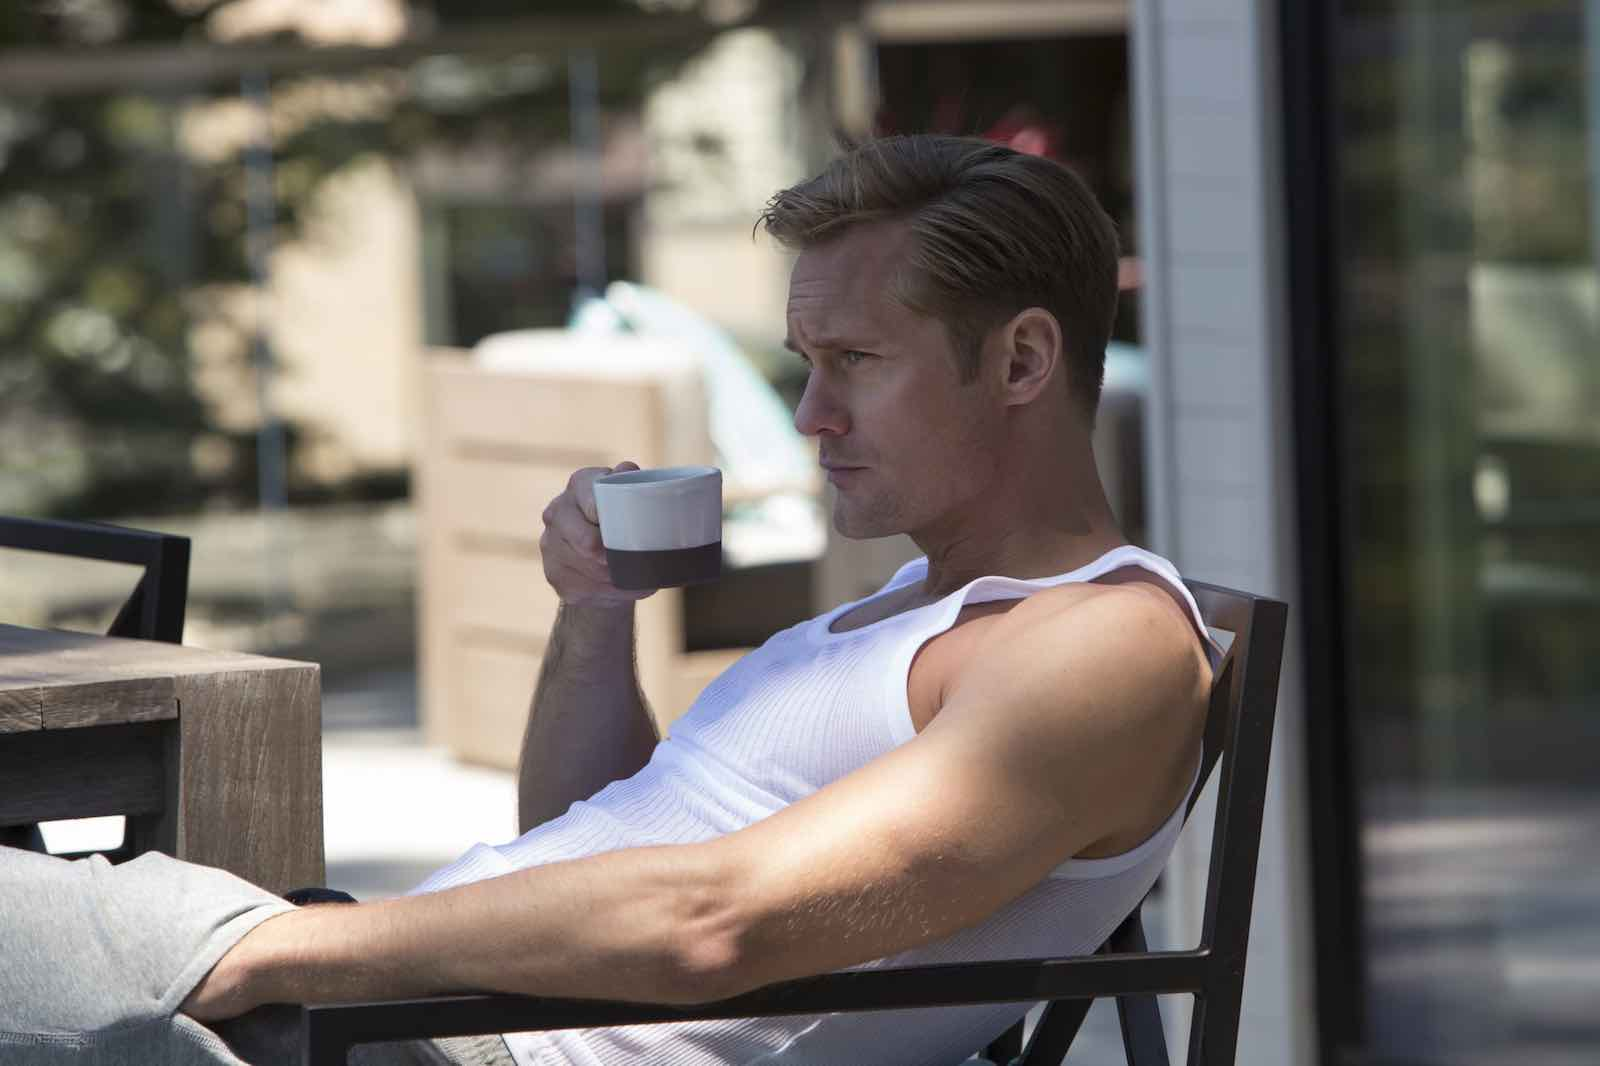 Altered Carbon Male Frontal where's all the peen on screen? - film daily